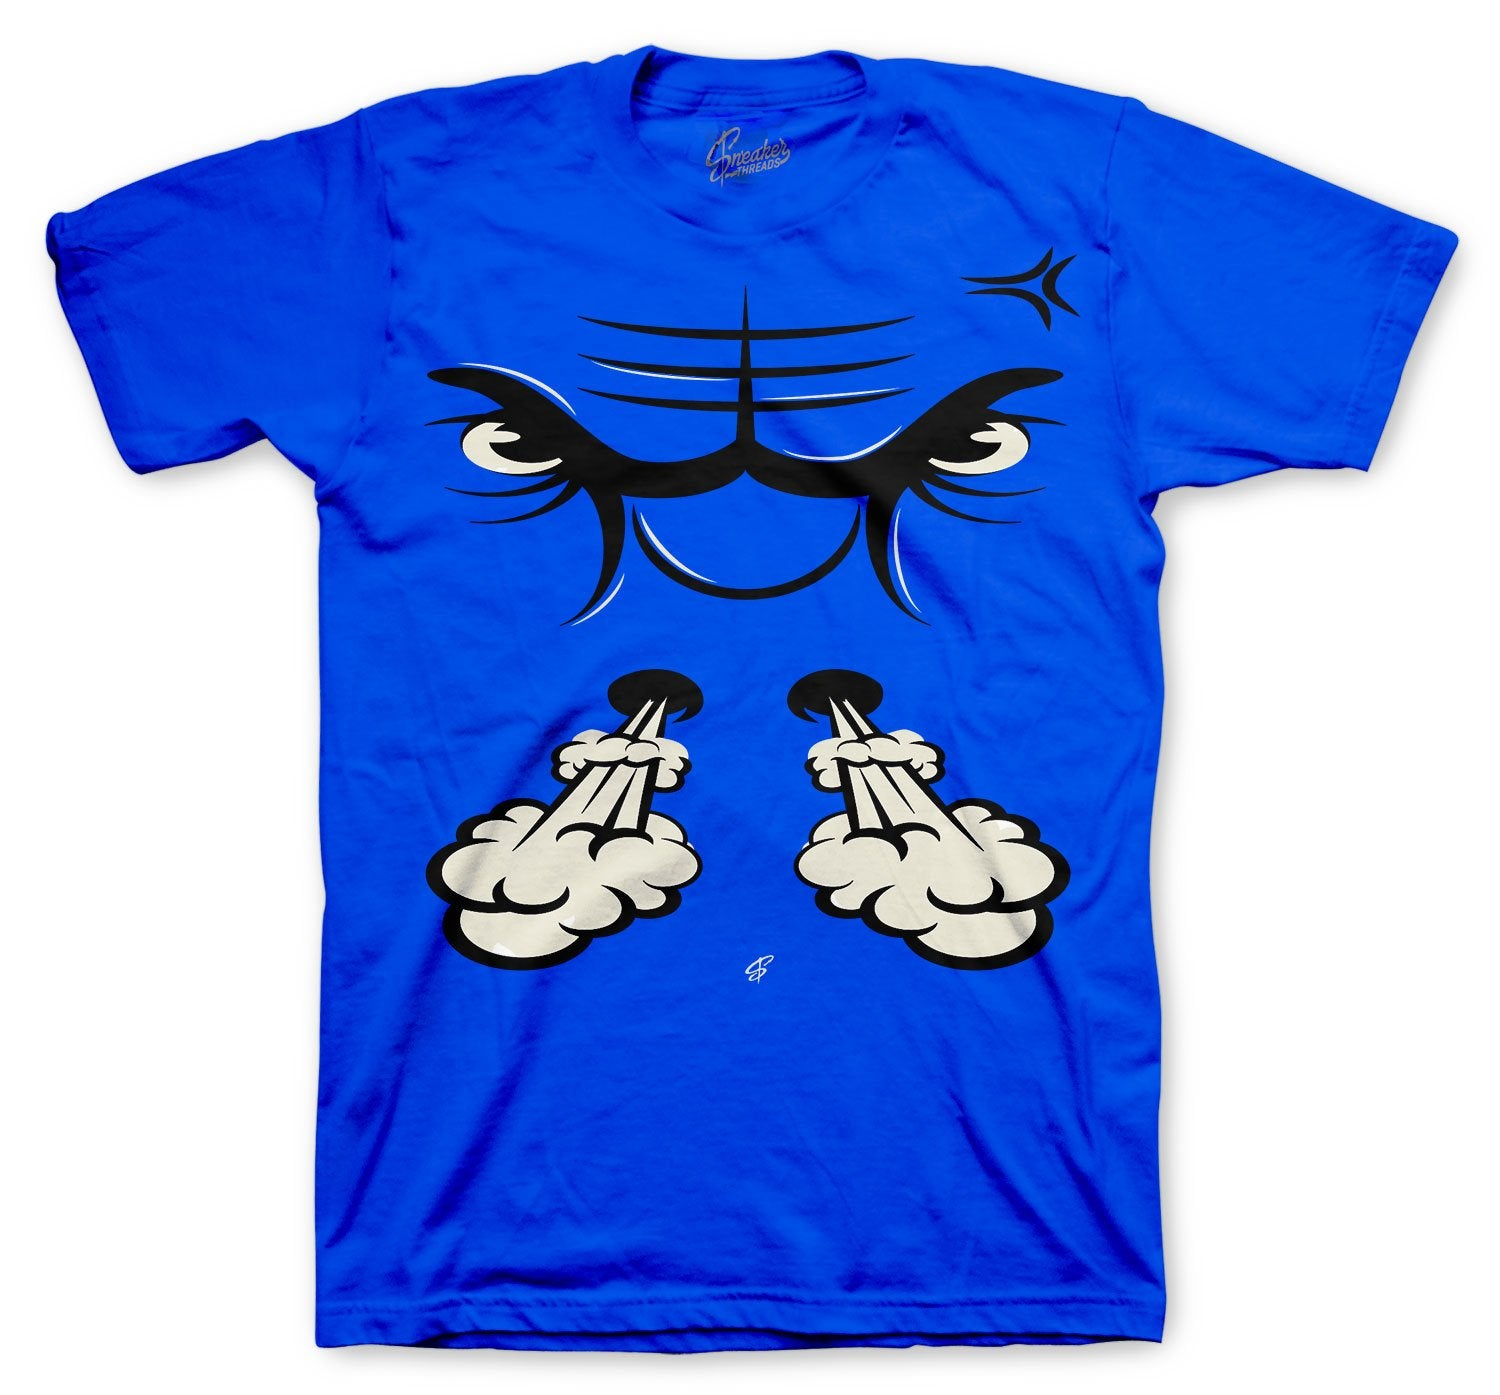 Jordan 9 Racer Blue Sneaker collection matching t shirts.